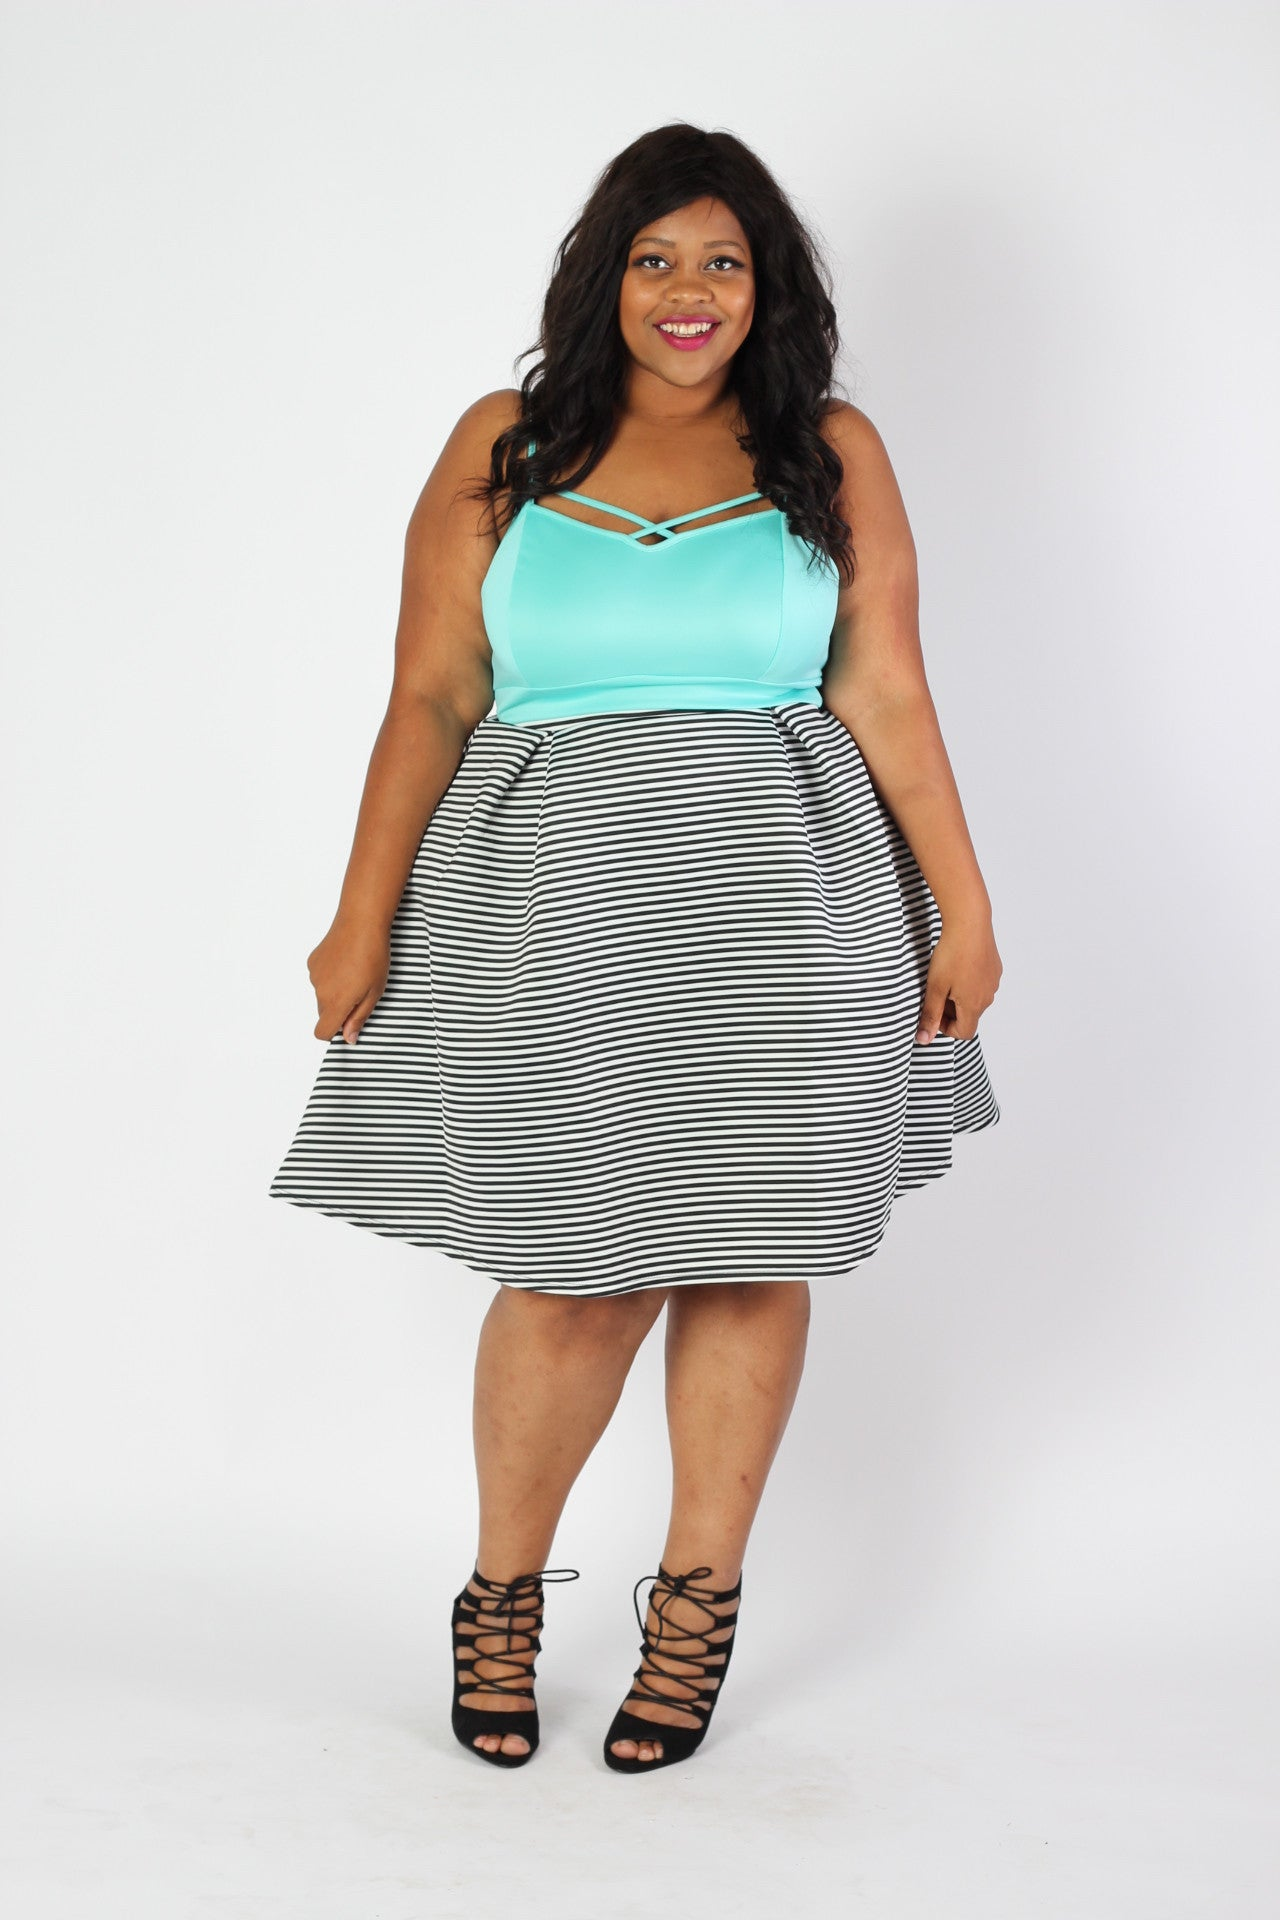 You have a date that you're really excited about. Bad part? It's right after work. So how do you look flirty and business-like all at once? By wearing this. Pair it with a cute top and a blazer for work then switch out the blazer for a destroyed jean jacket for a more casual look. The classic pattern goes with everything, and the cinched waist mean you'll be looking all types of gorgeous. 94% Polyester, 4% Spandex Machine wash cold separately on gentle cycle Tumble dry low Made in U.S.A Length: 25